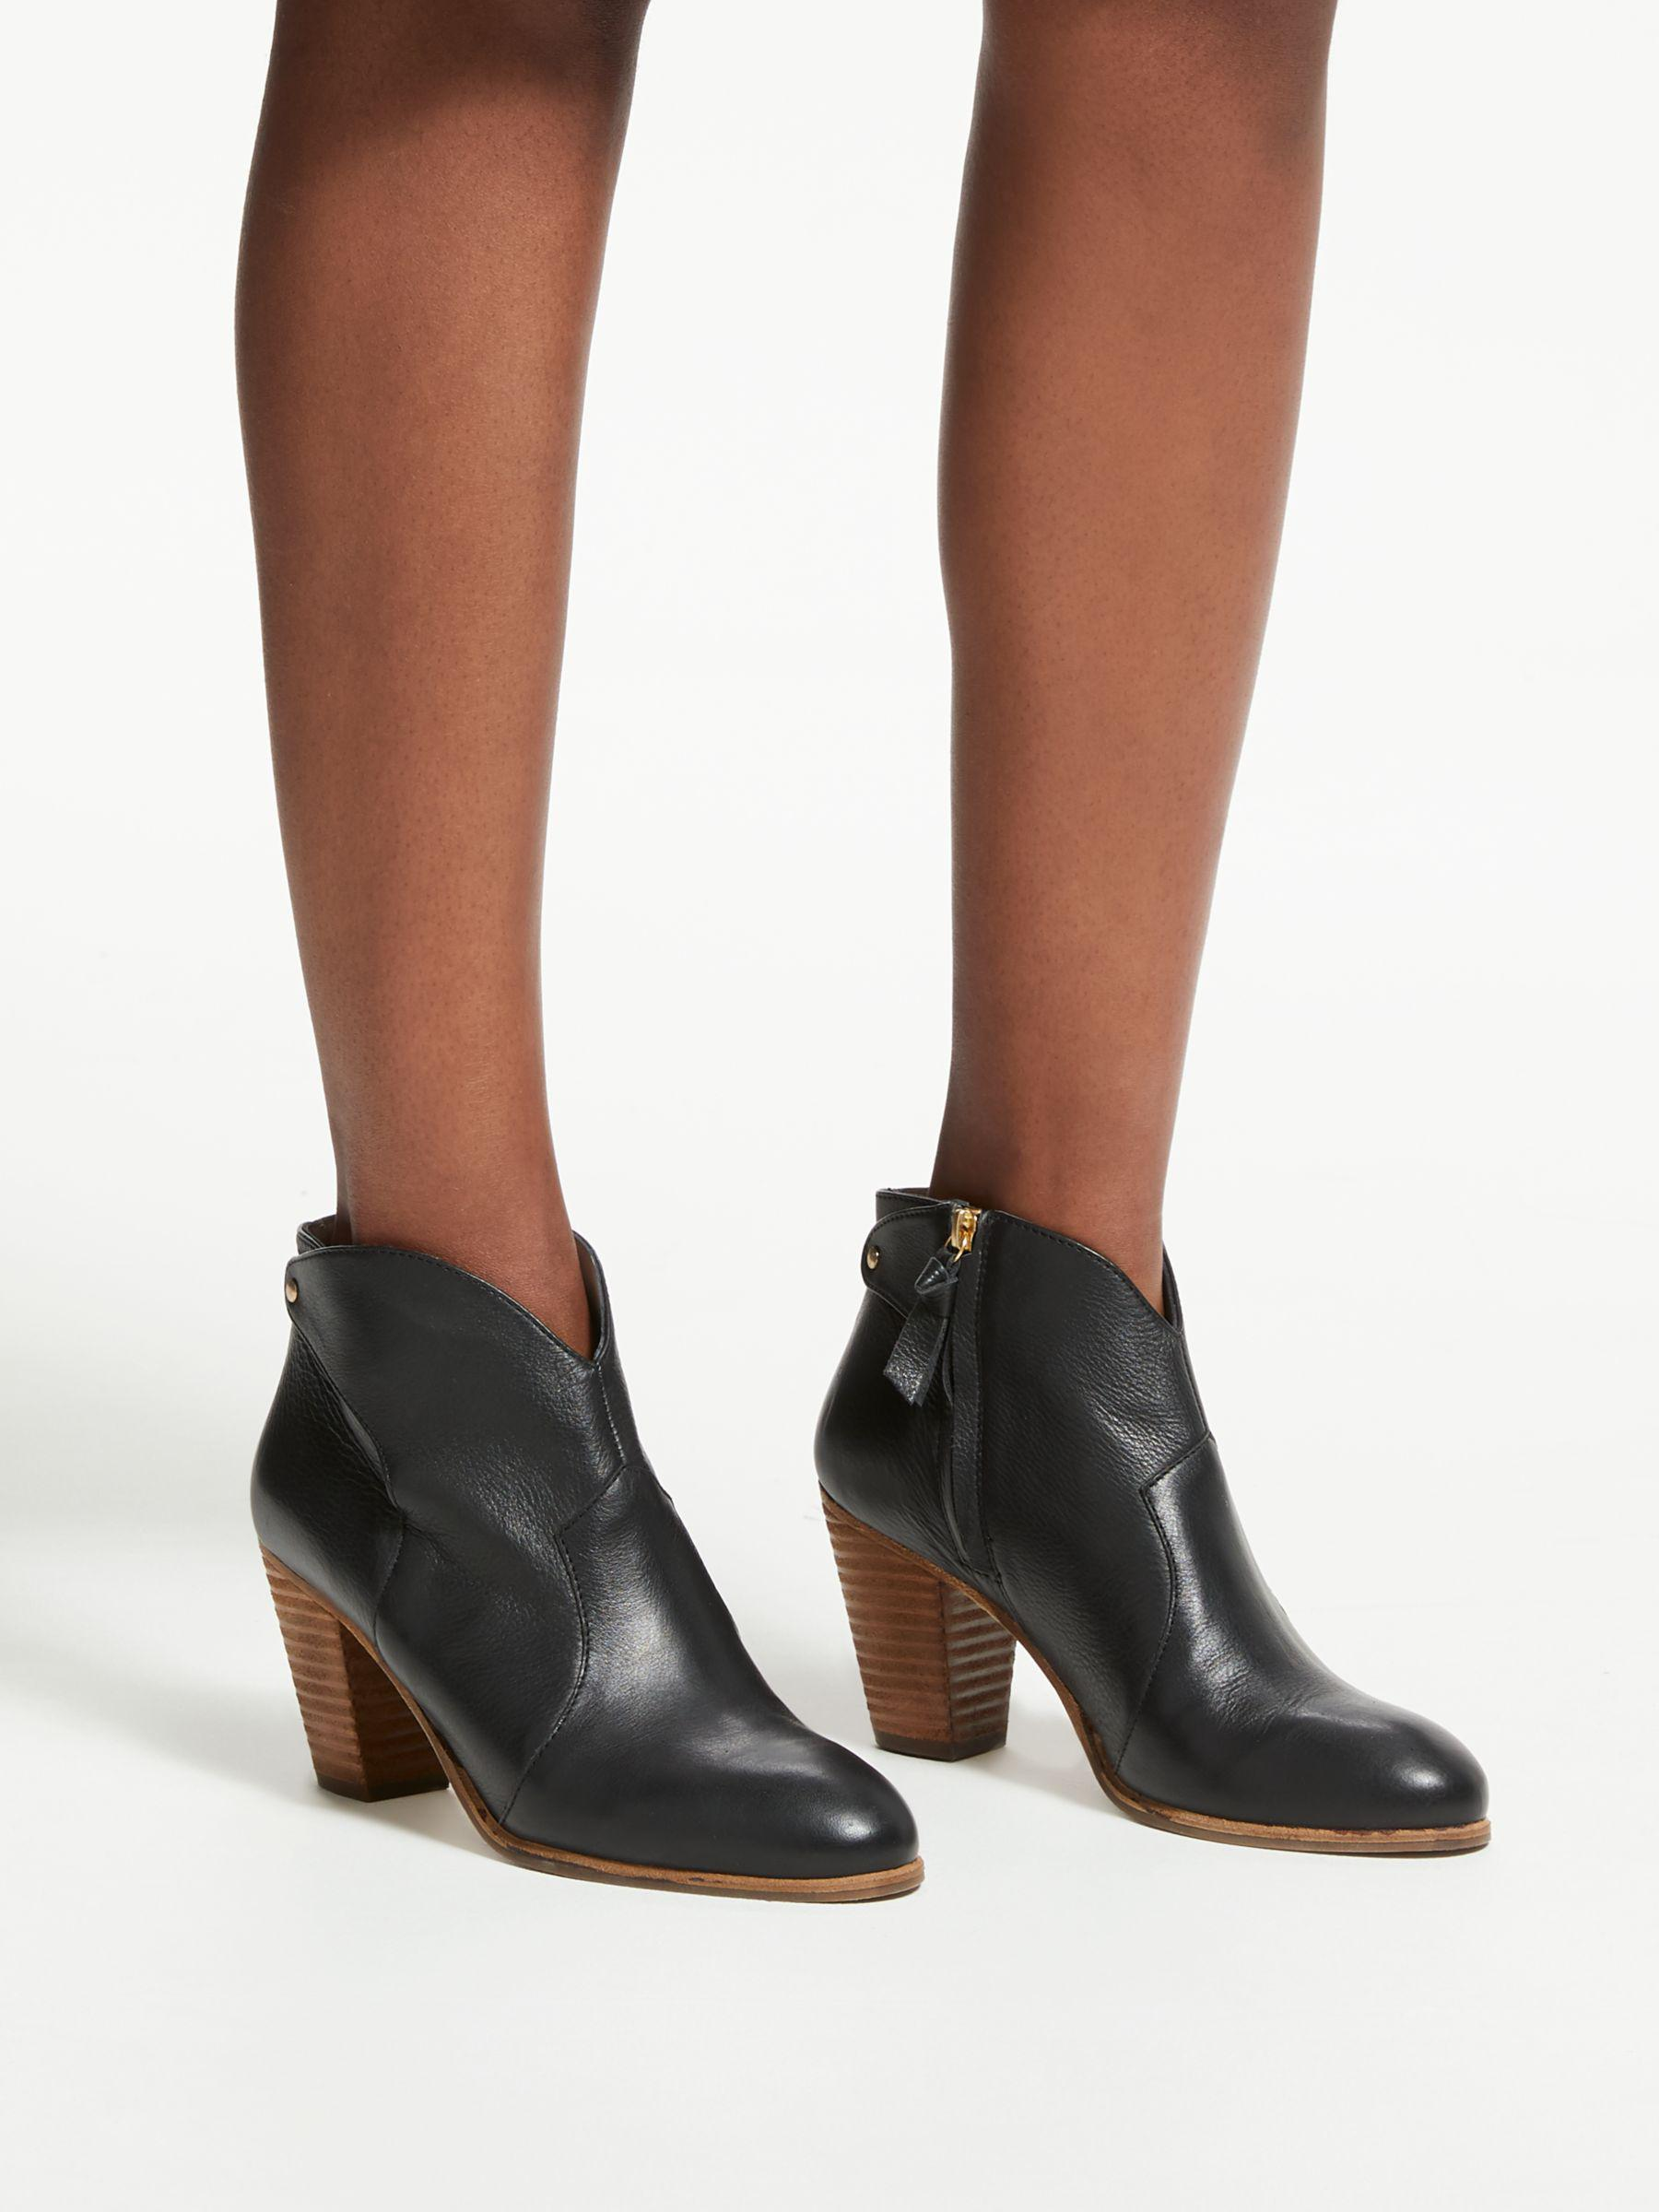 6f9a3623 Boden Hoxton Block Heeled Ankle Boots in Black - Lyst